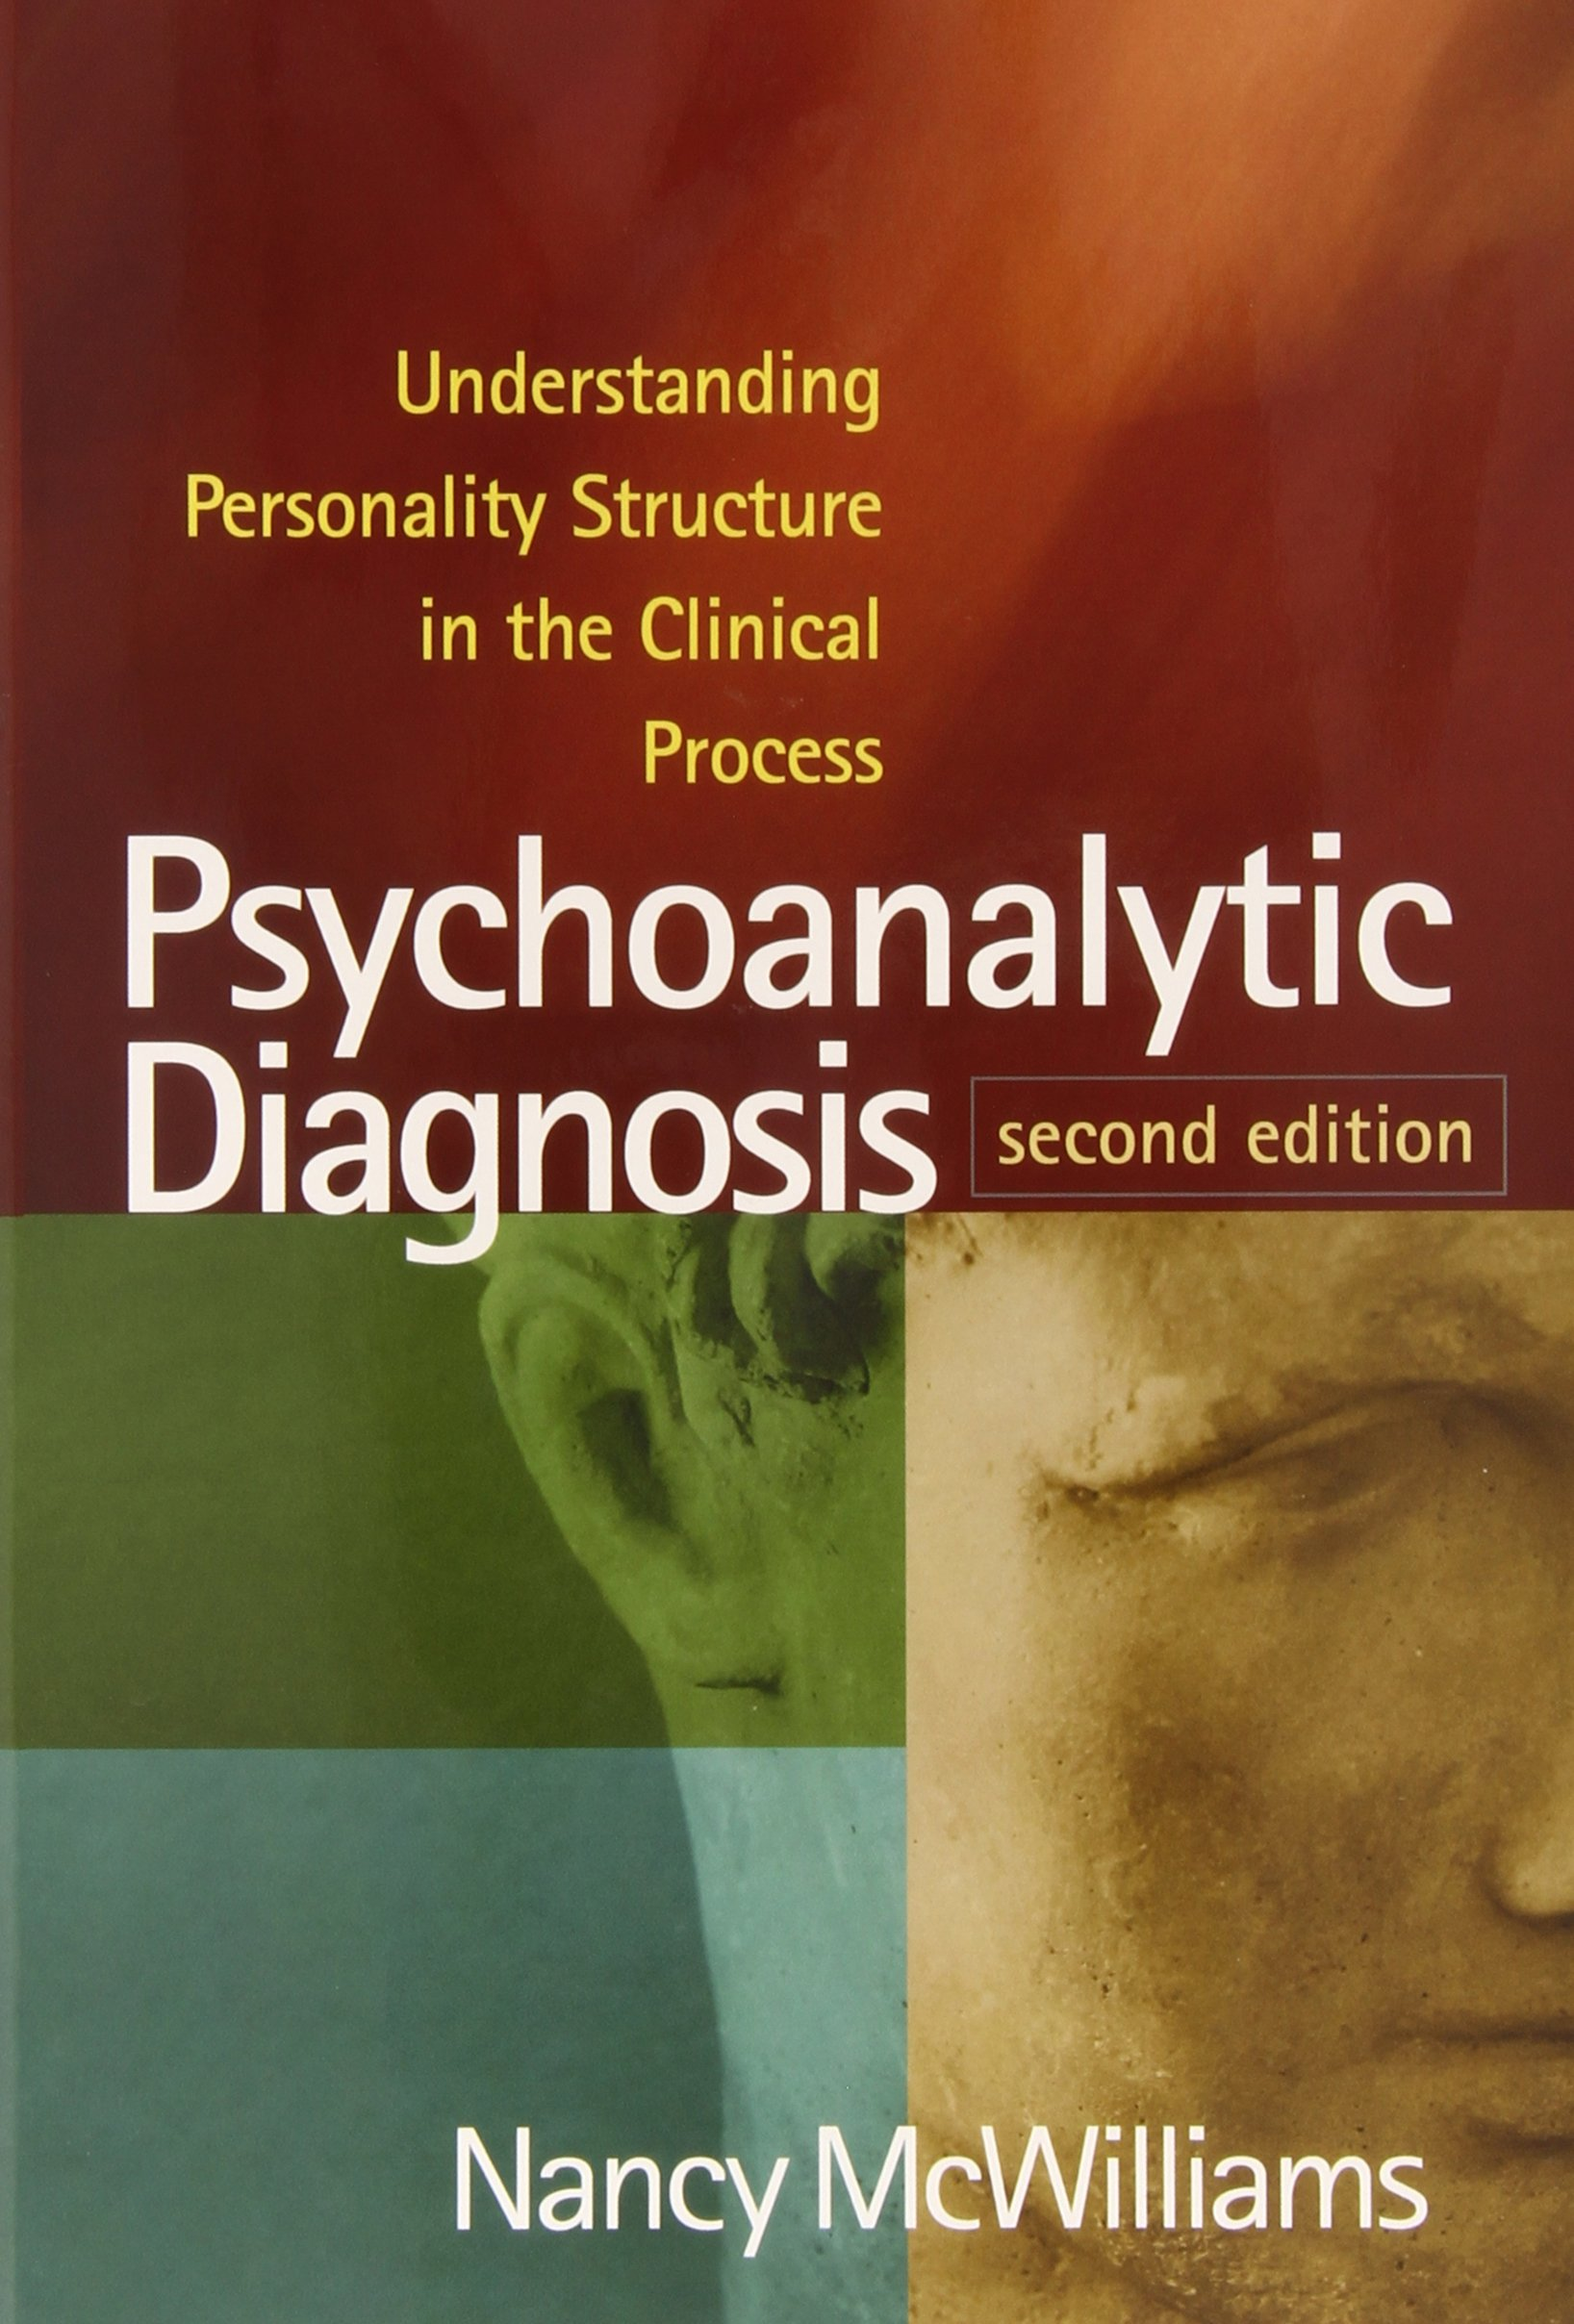 Psychoanalytic Diagnosis, Second Edition: Understanding Personality Structure in the Clinical Process by Guilford Publications